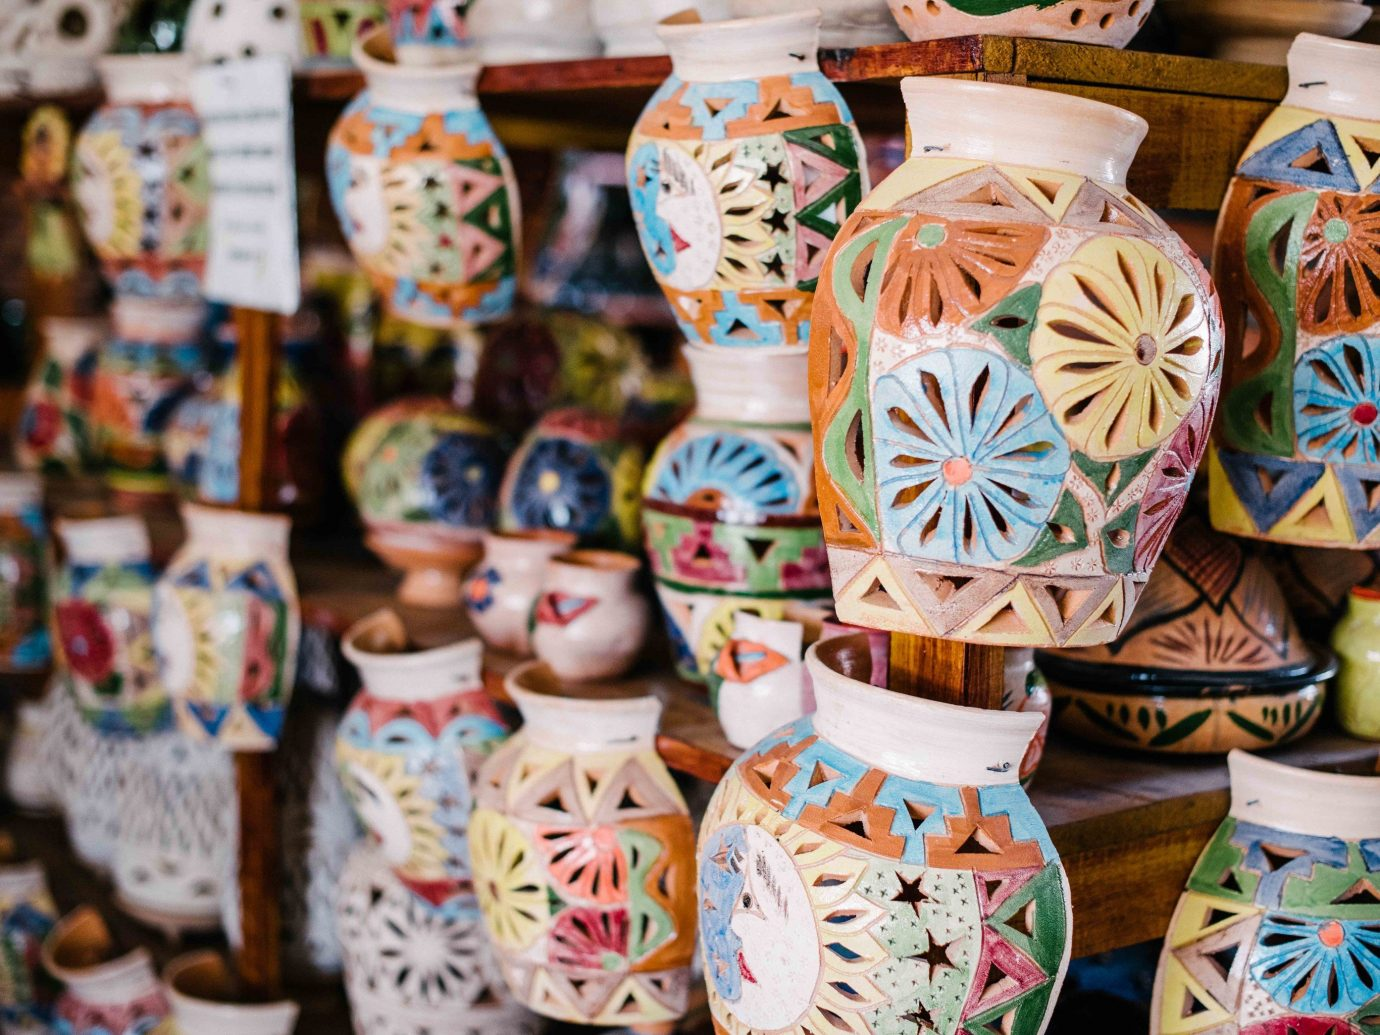 Arts + Culture Mexico Oaxaca Trip Ideas indoor ceramic porcelain tradition pottery colorful decorated